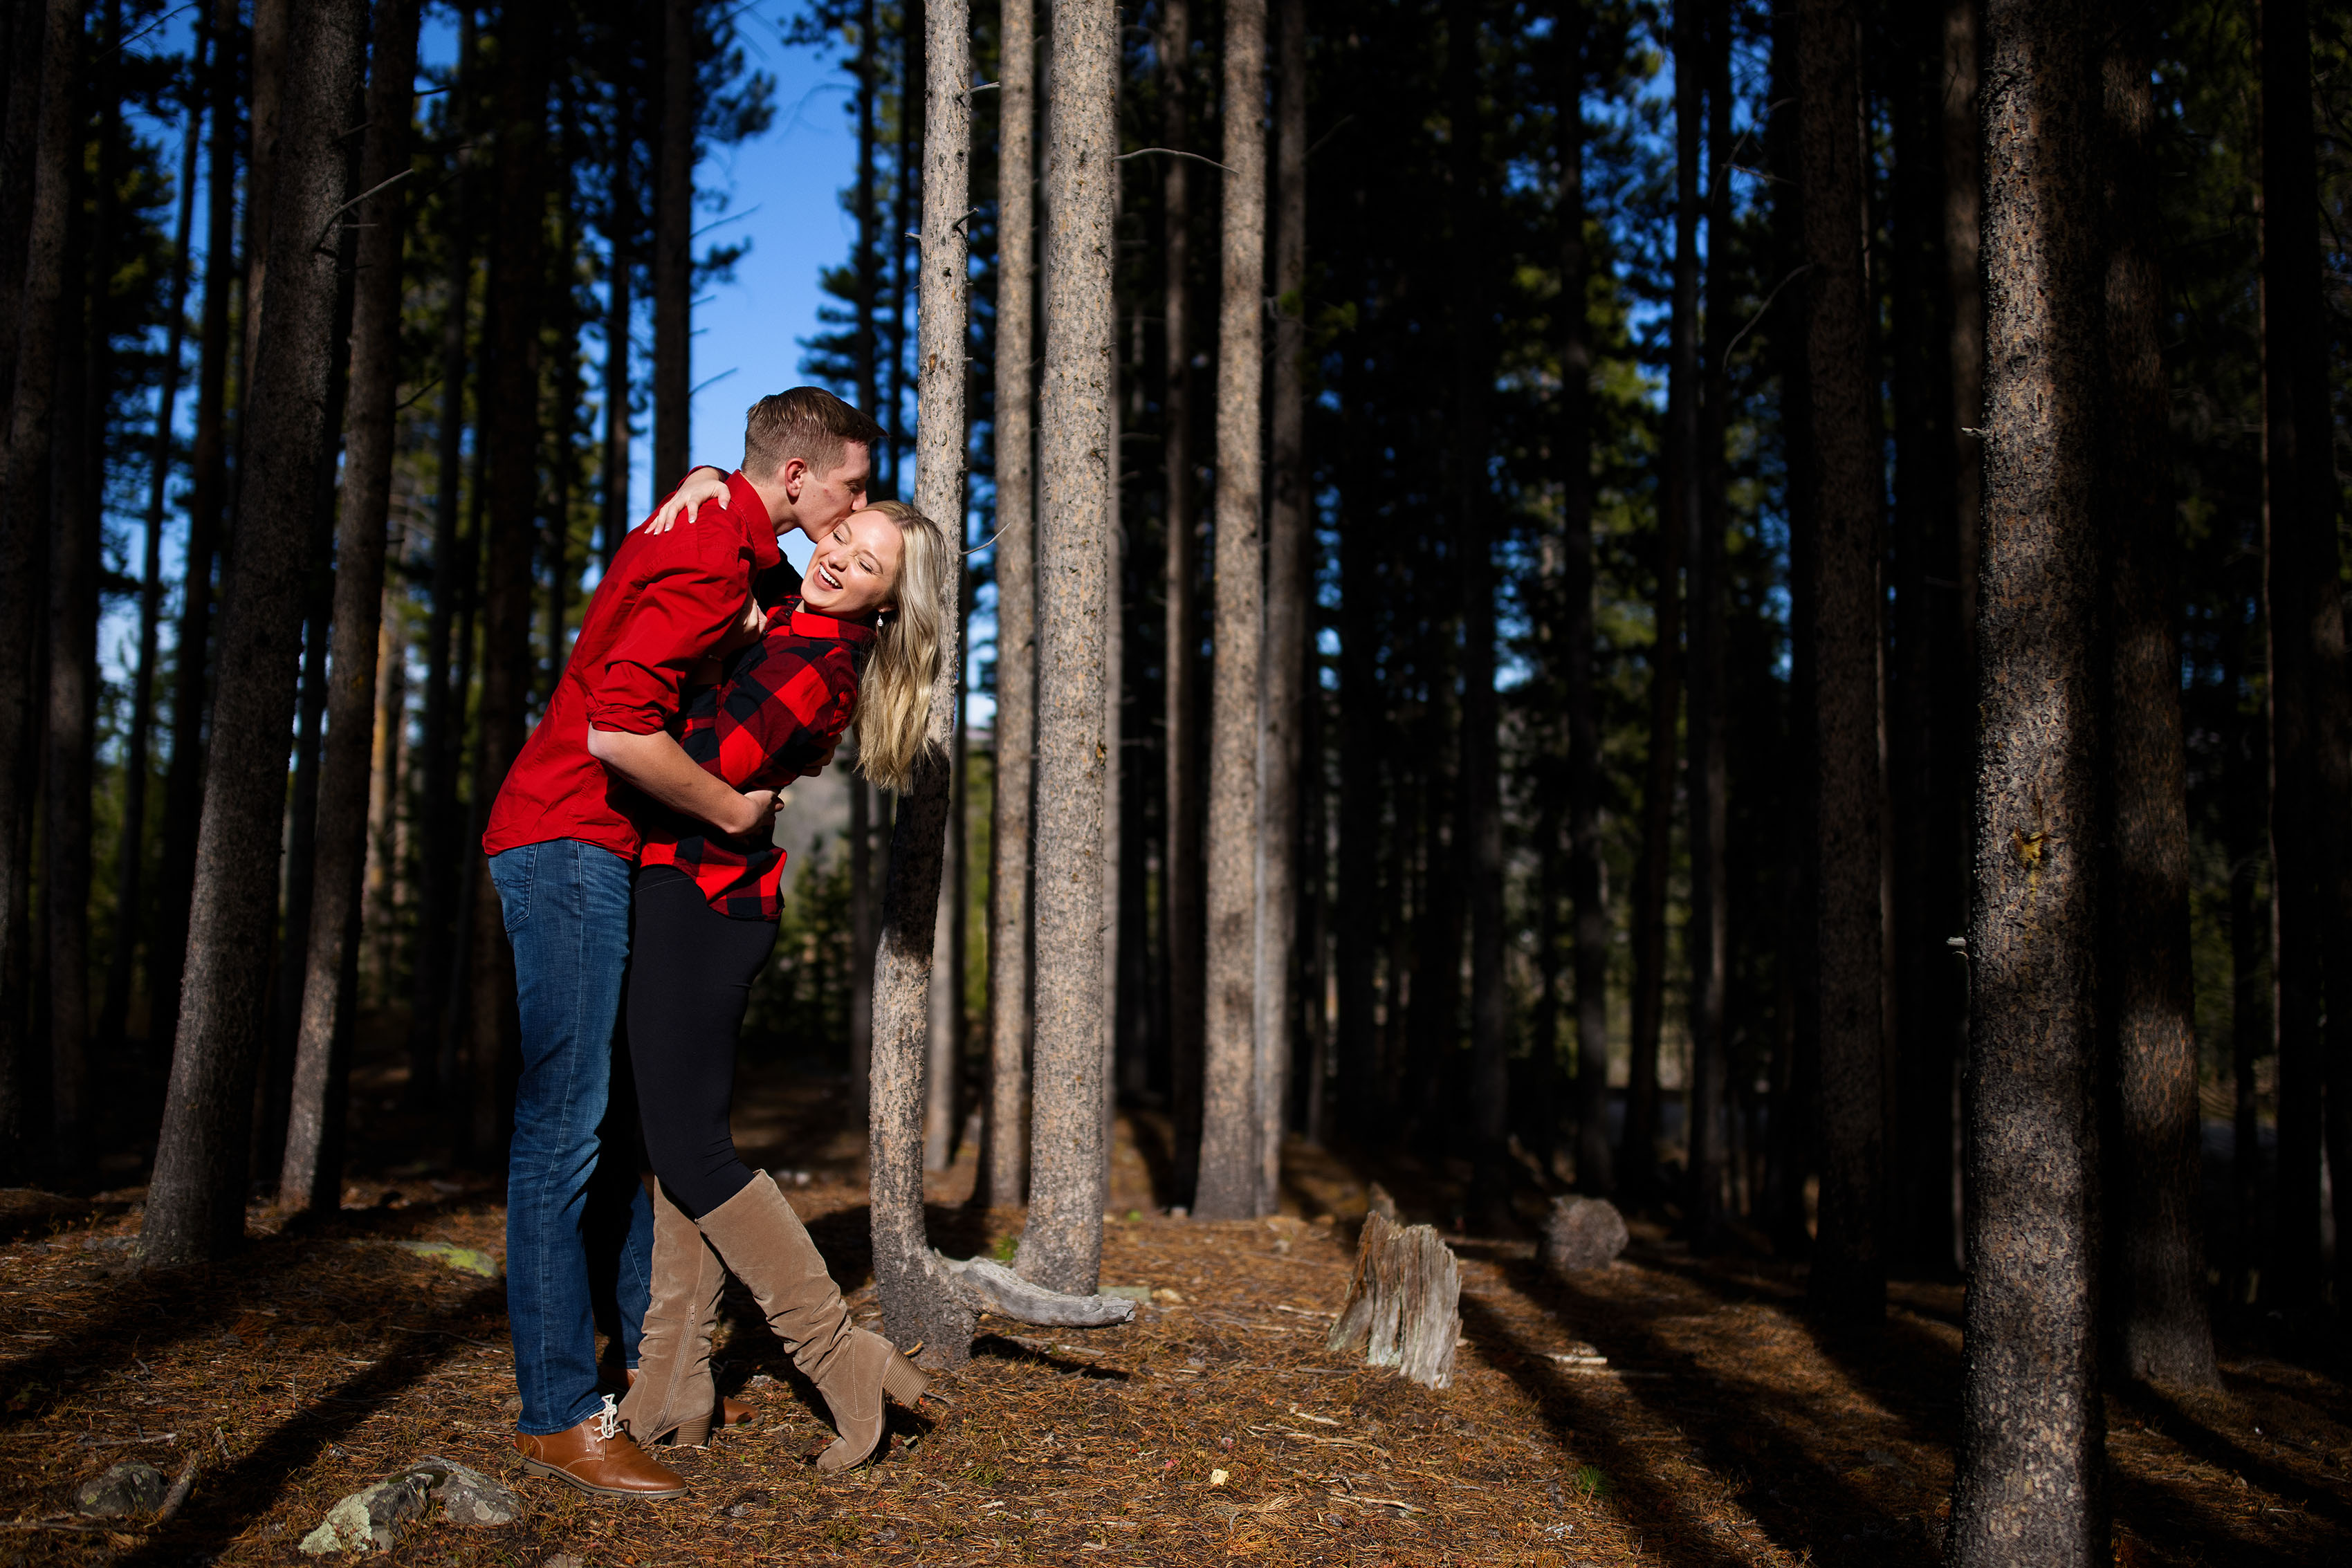 Joseph kisses Chloe in a grove of pine trees at Sawmill Reservoir